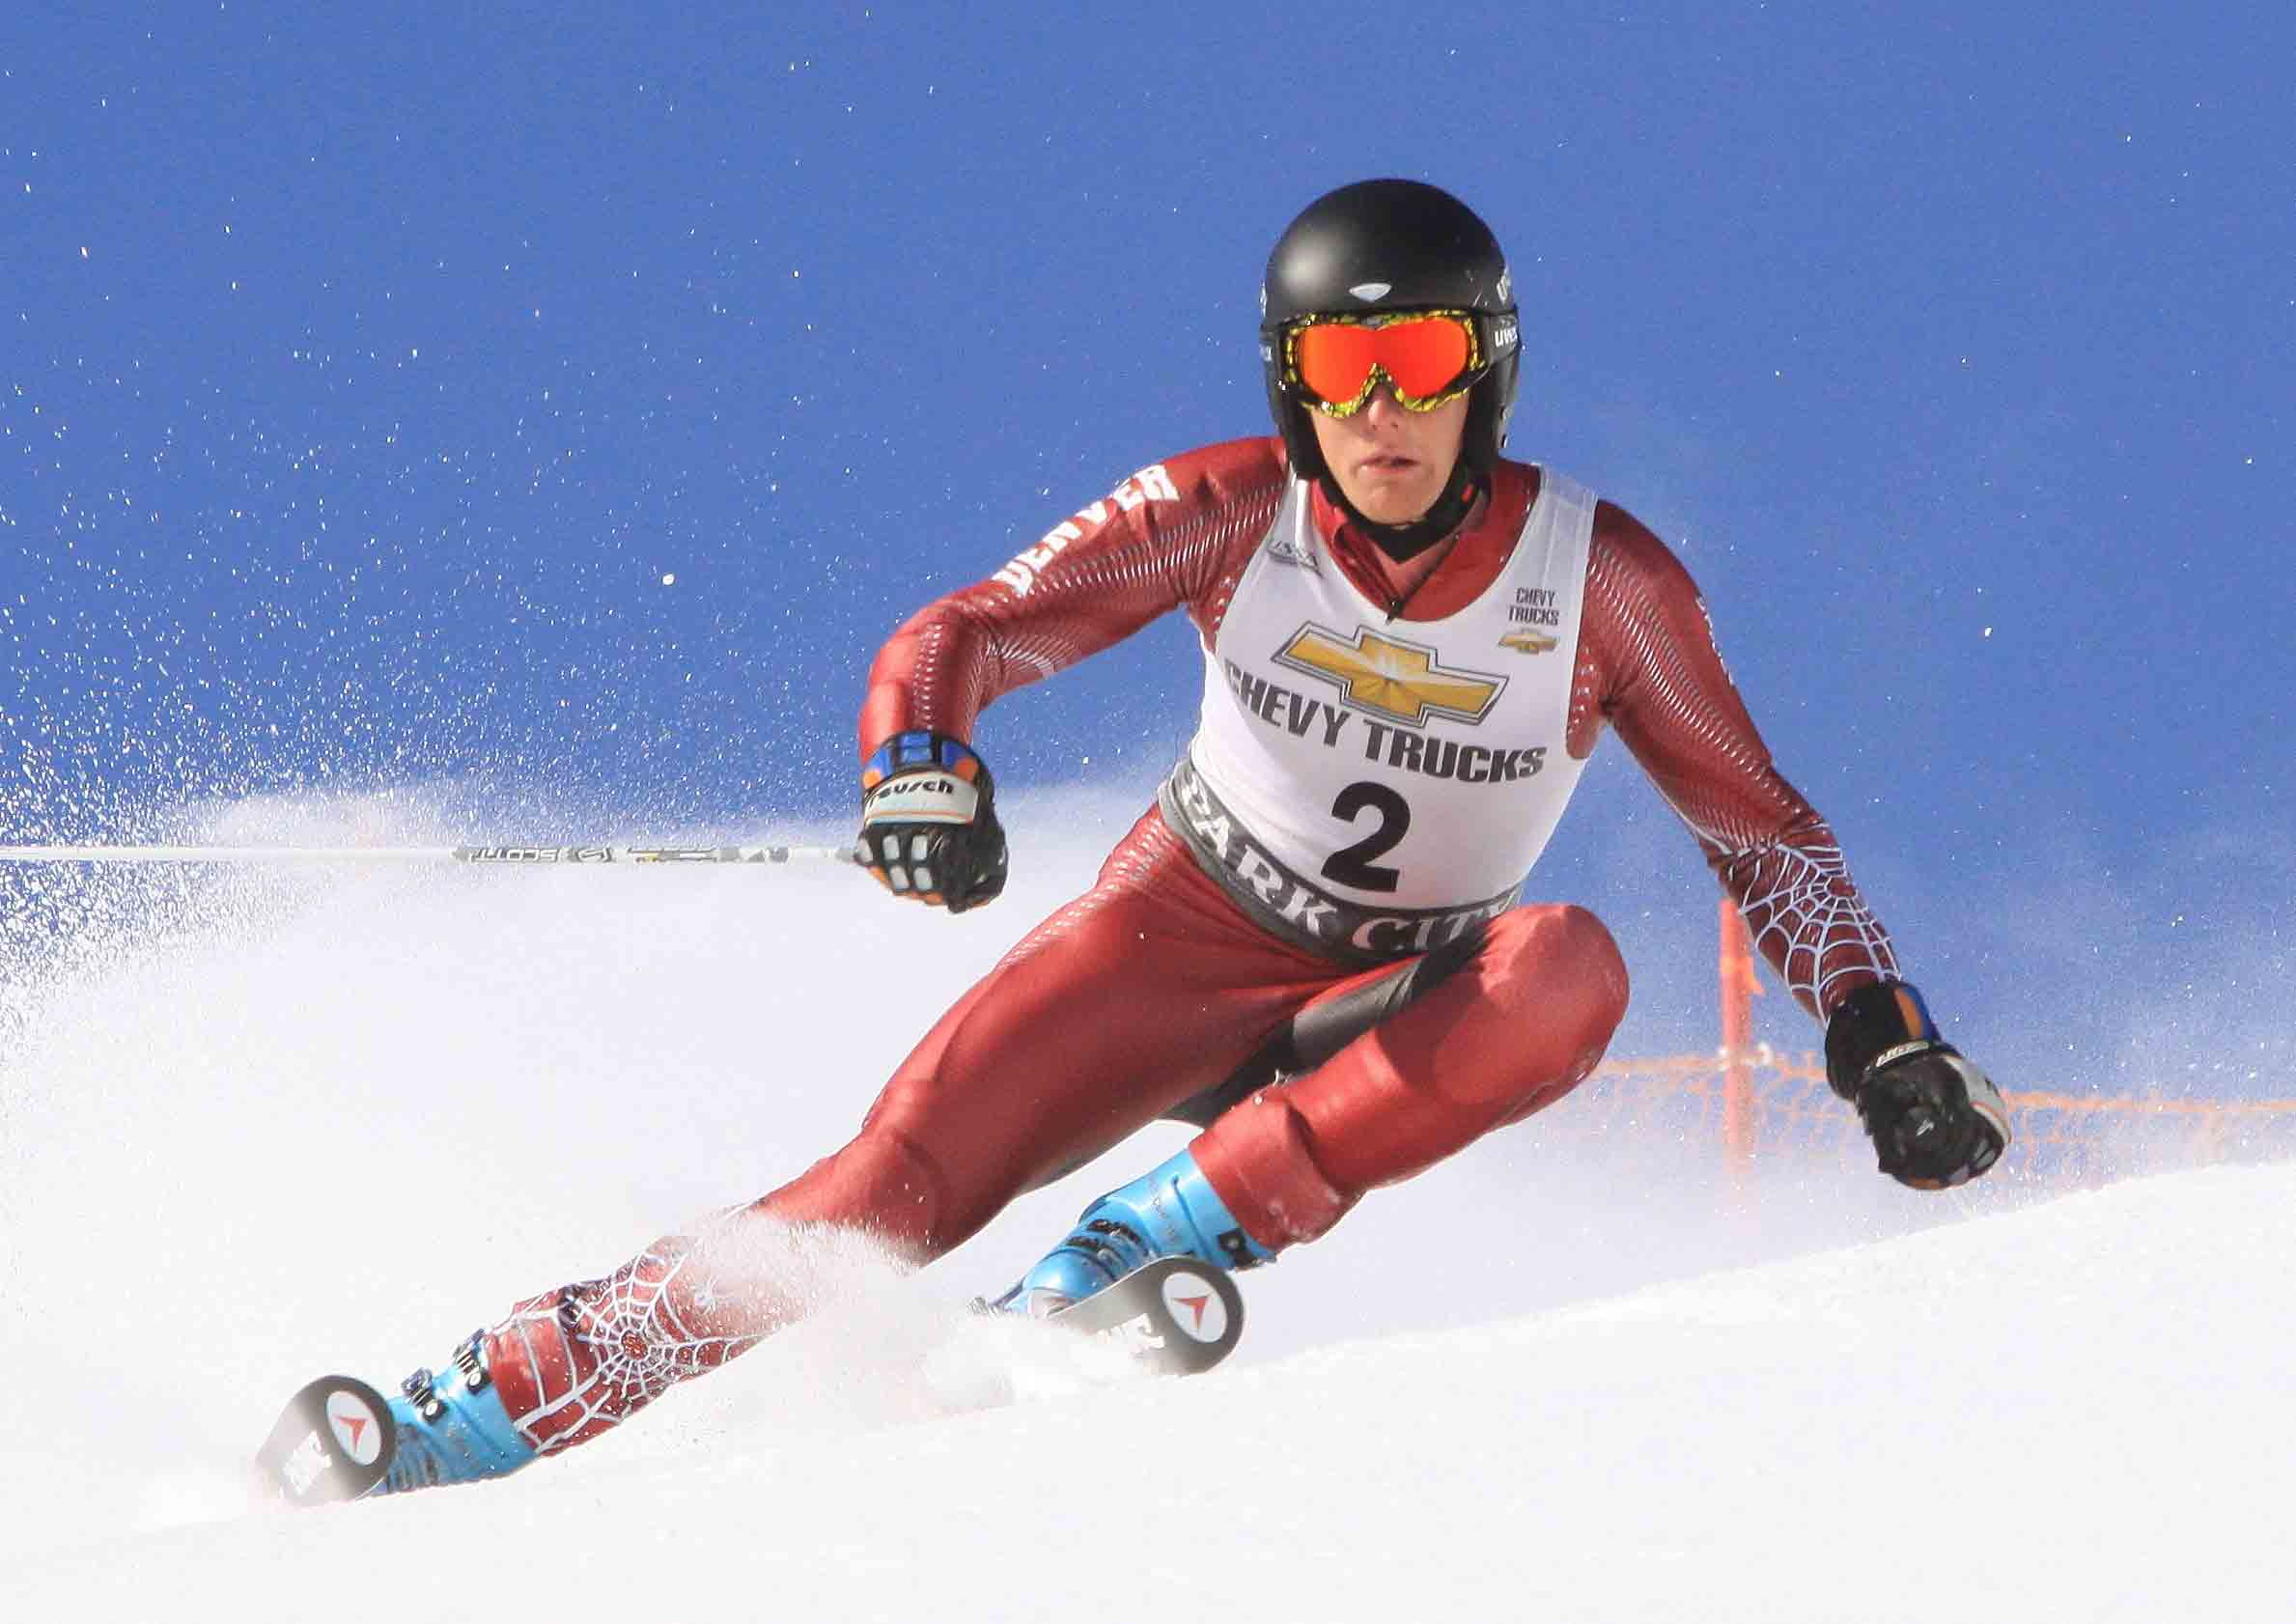 Pictured racing in 2009, DU's Seppi Stiegler won the 2011 Winter World University Games slalom in Turkey. Credit: DU